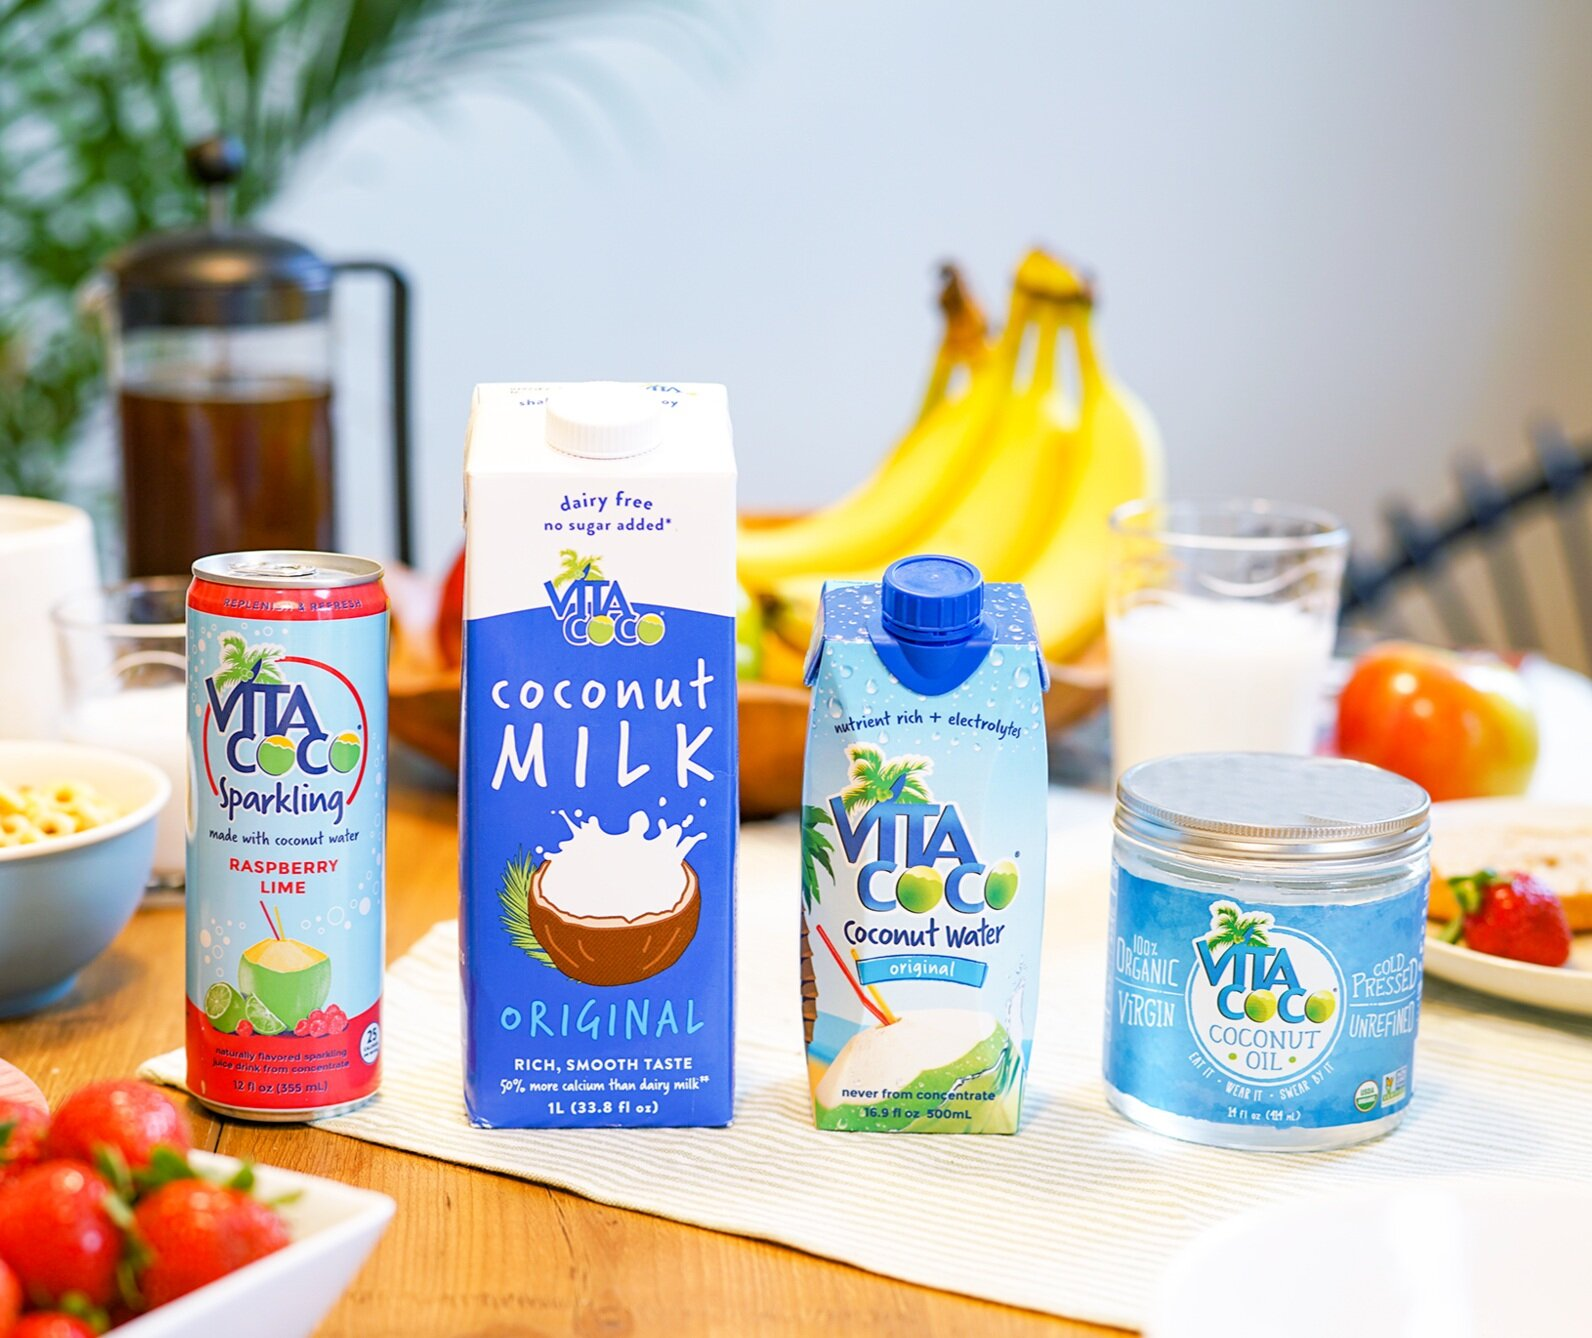 vita coco healthy coconut products.jpg